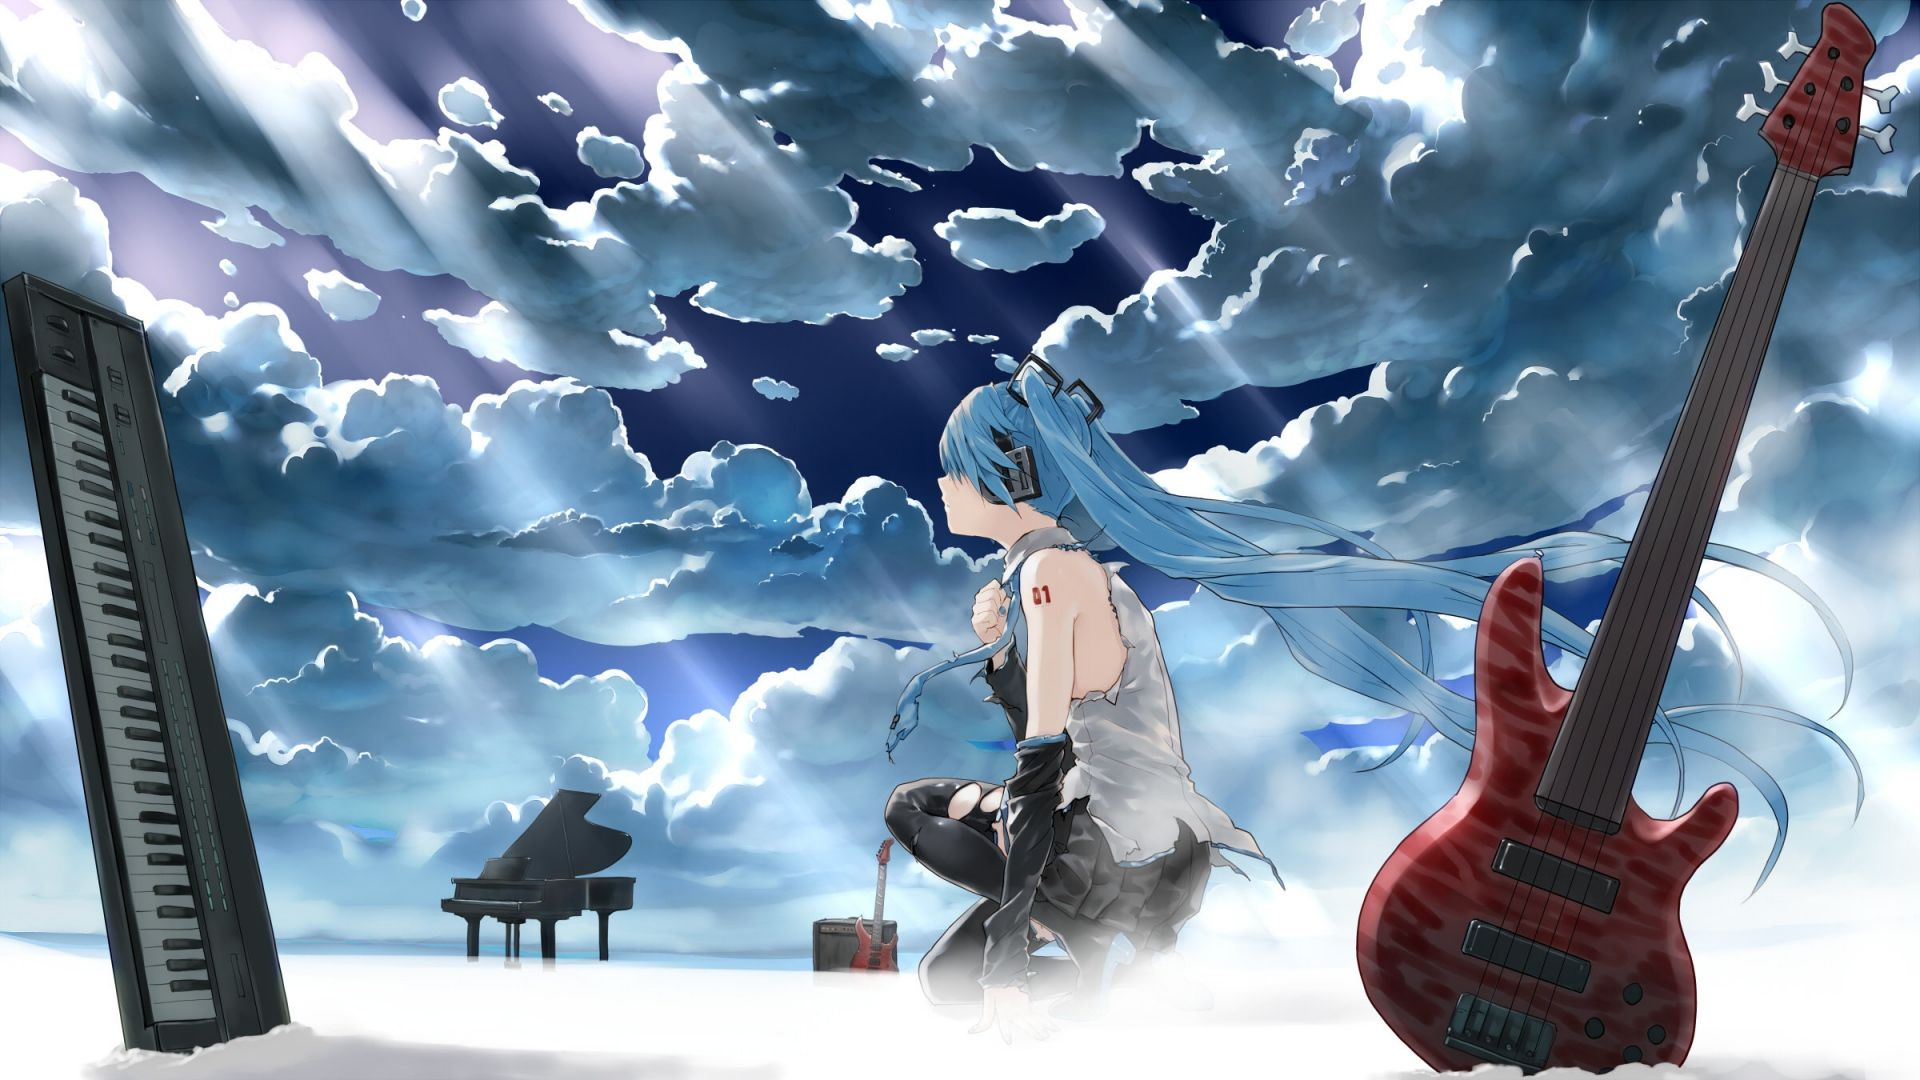 Pin By Syed Hasan On Anime Hatsune Miku Vocaloid Anime Wallpaper